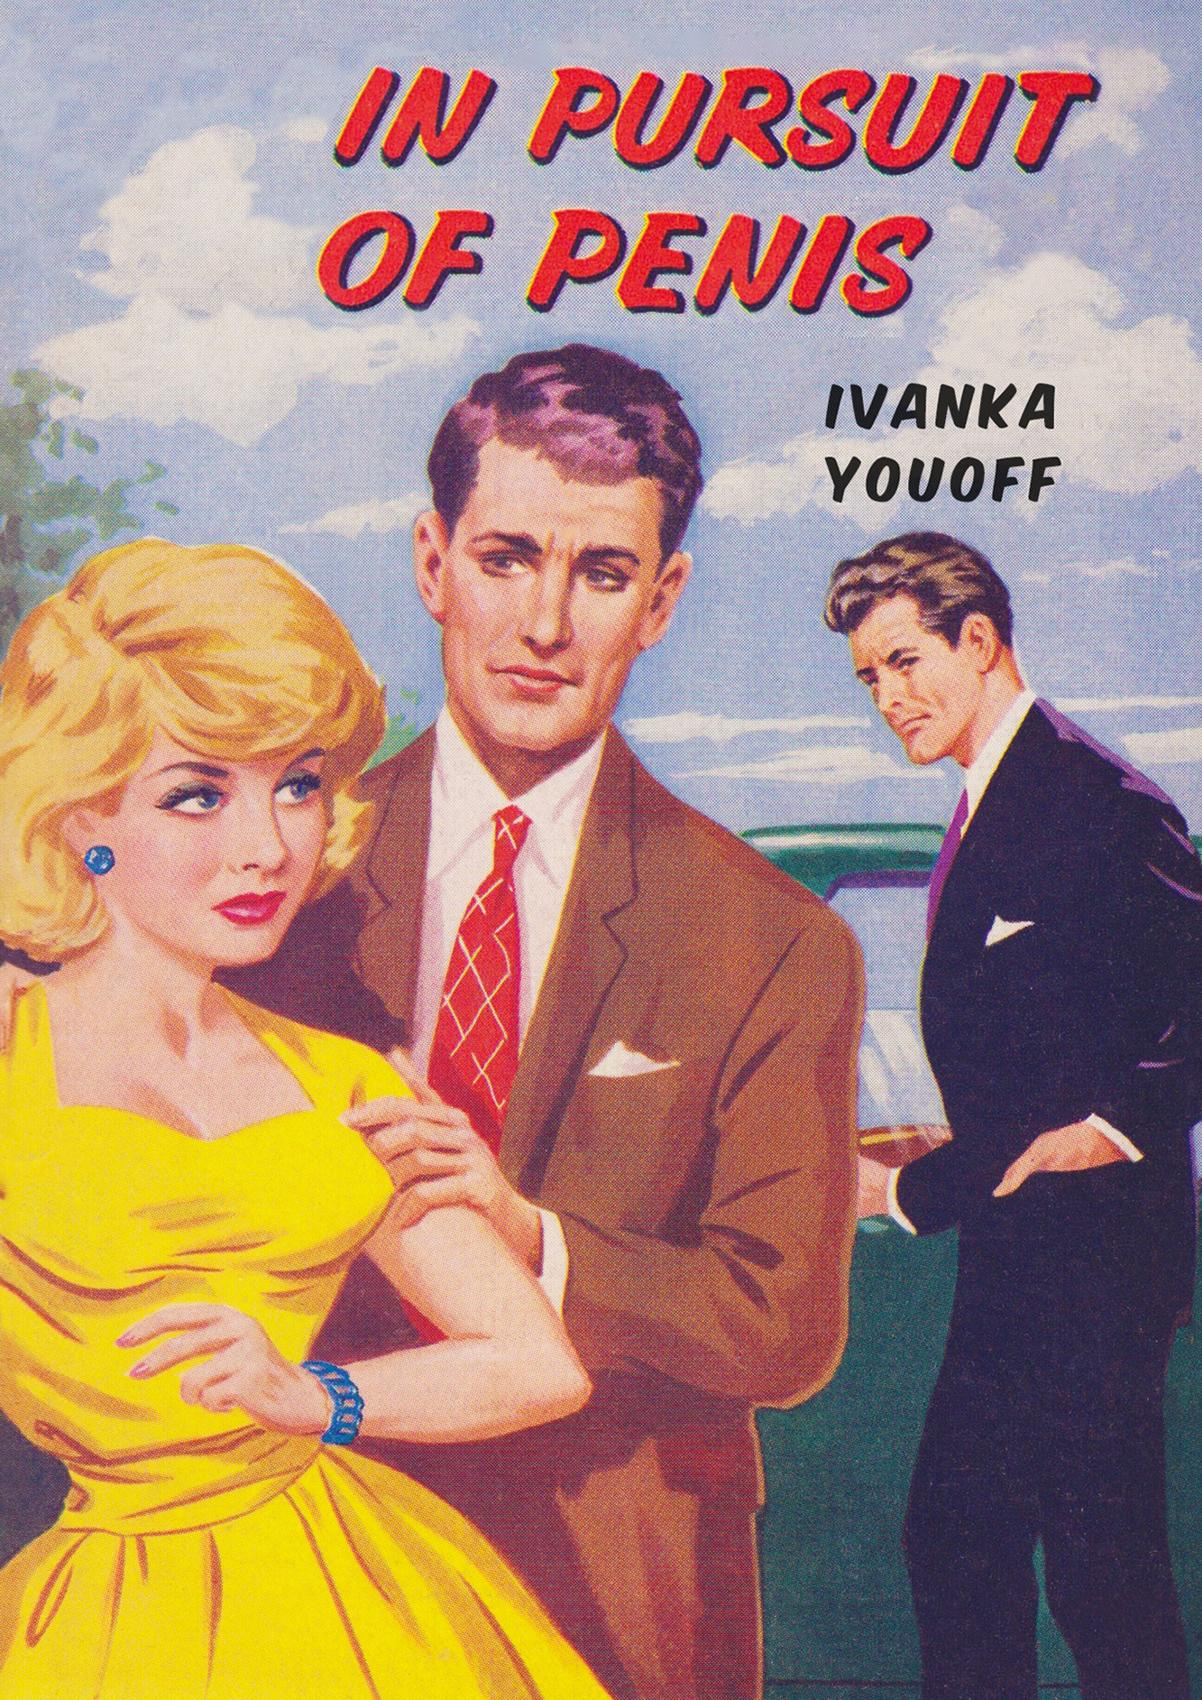 In Pursuit of Penis. Ivanka Youoff